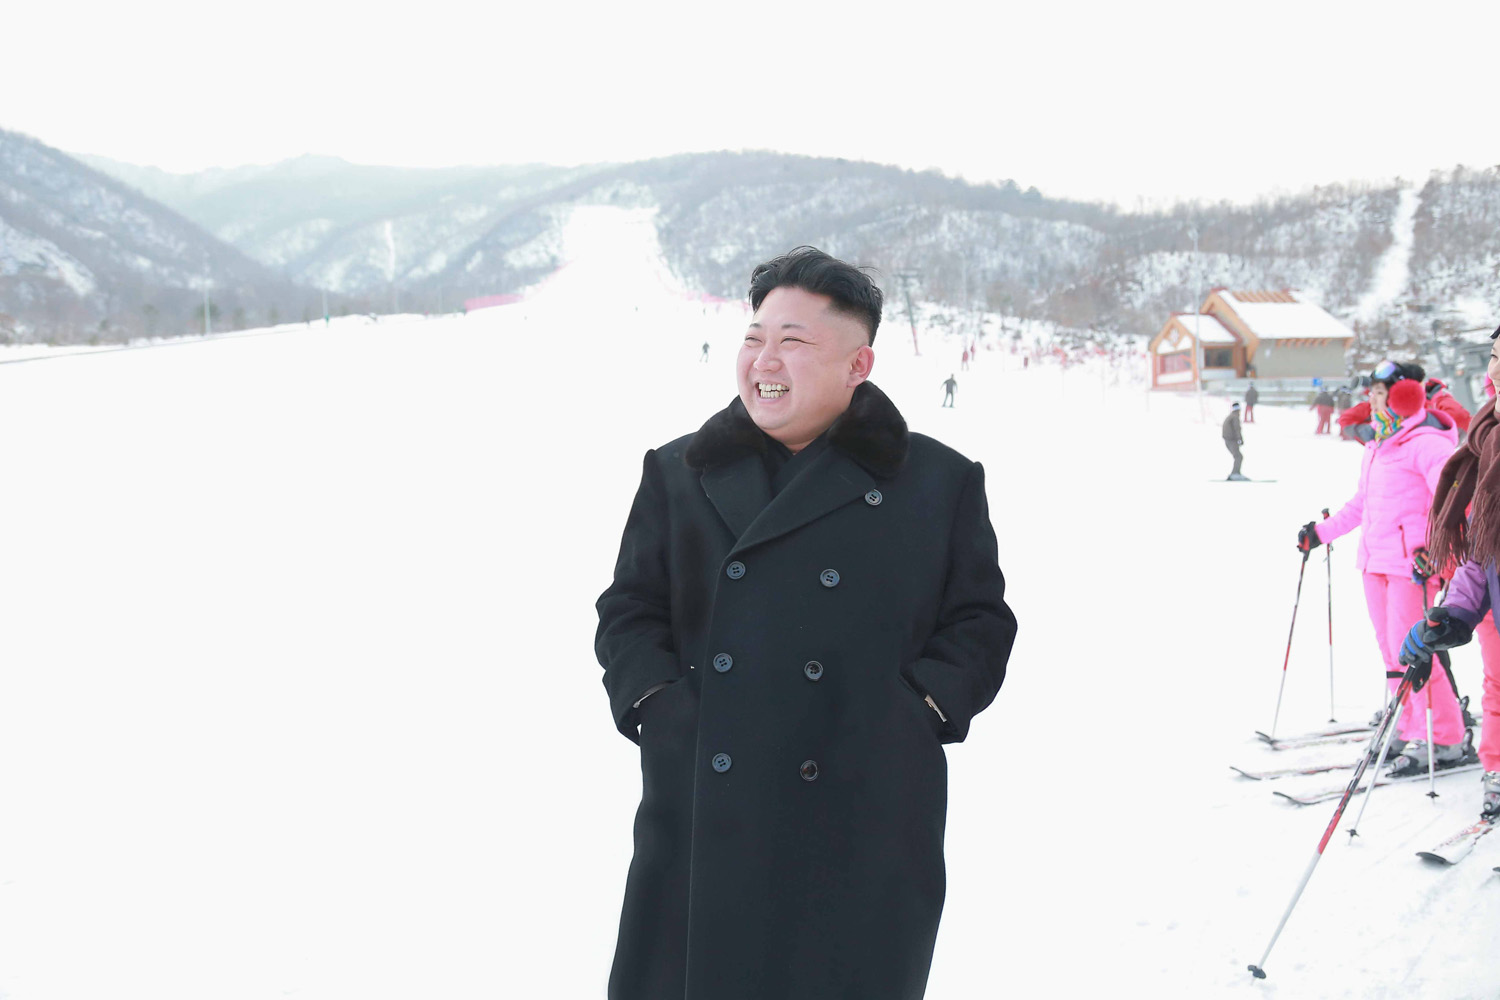 North Korean leader Kim Jong Un visits the newly built ski resort in the Masik Pass region, in this undated photo released by North Korea's Korean Central News Agency (KCNA) in Pyongyang on December 31, 2013. North Korea's state-run television KRT said Kim was satisfied with the ski resort after looking around its facilities which included a hotel, ski service and rental shops.